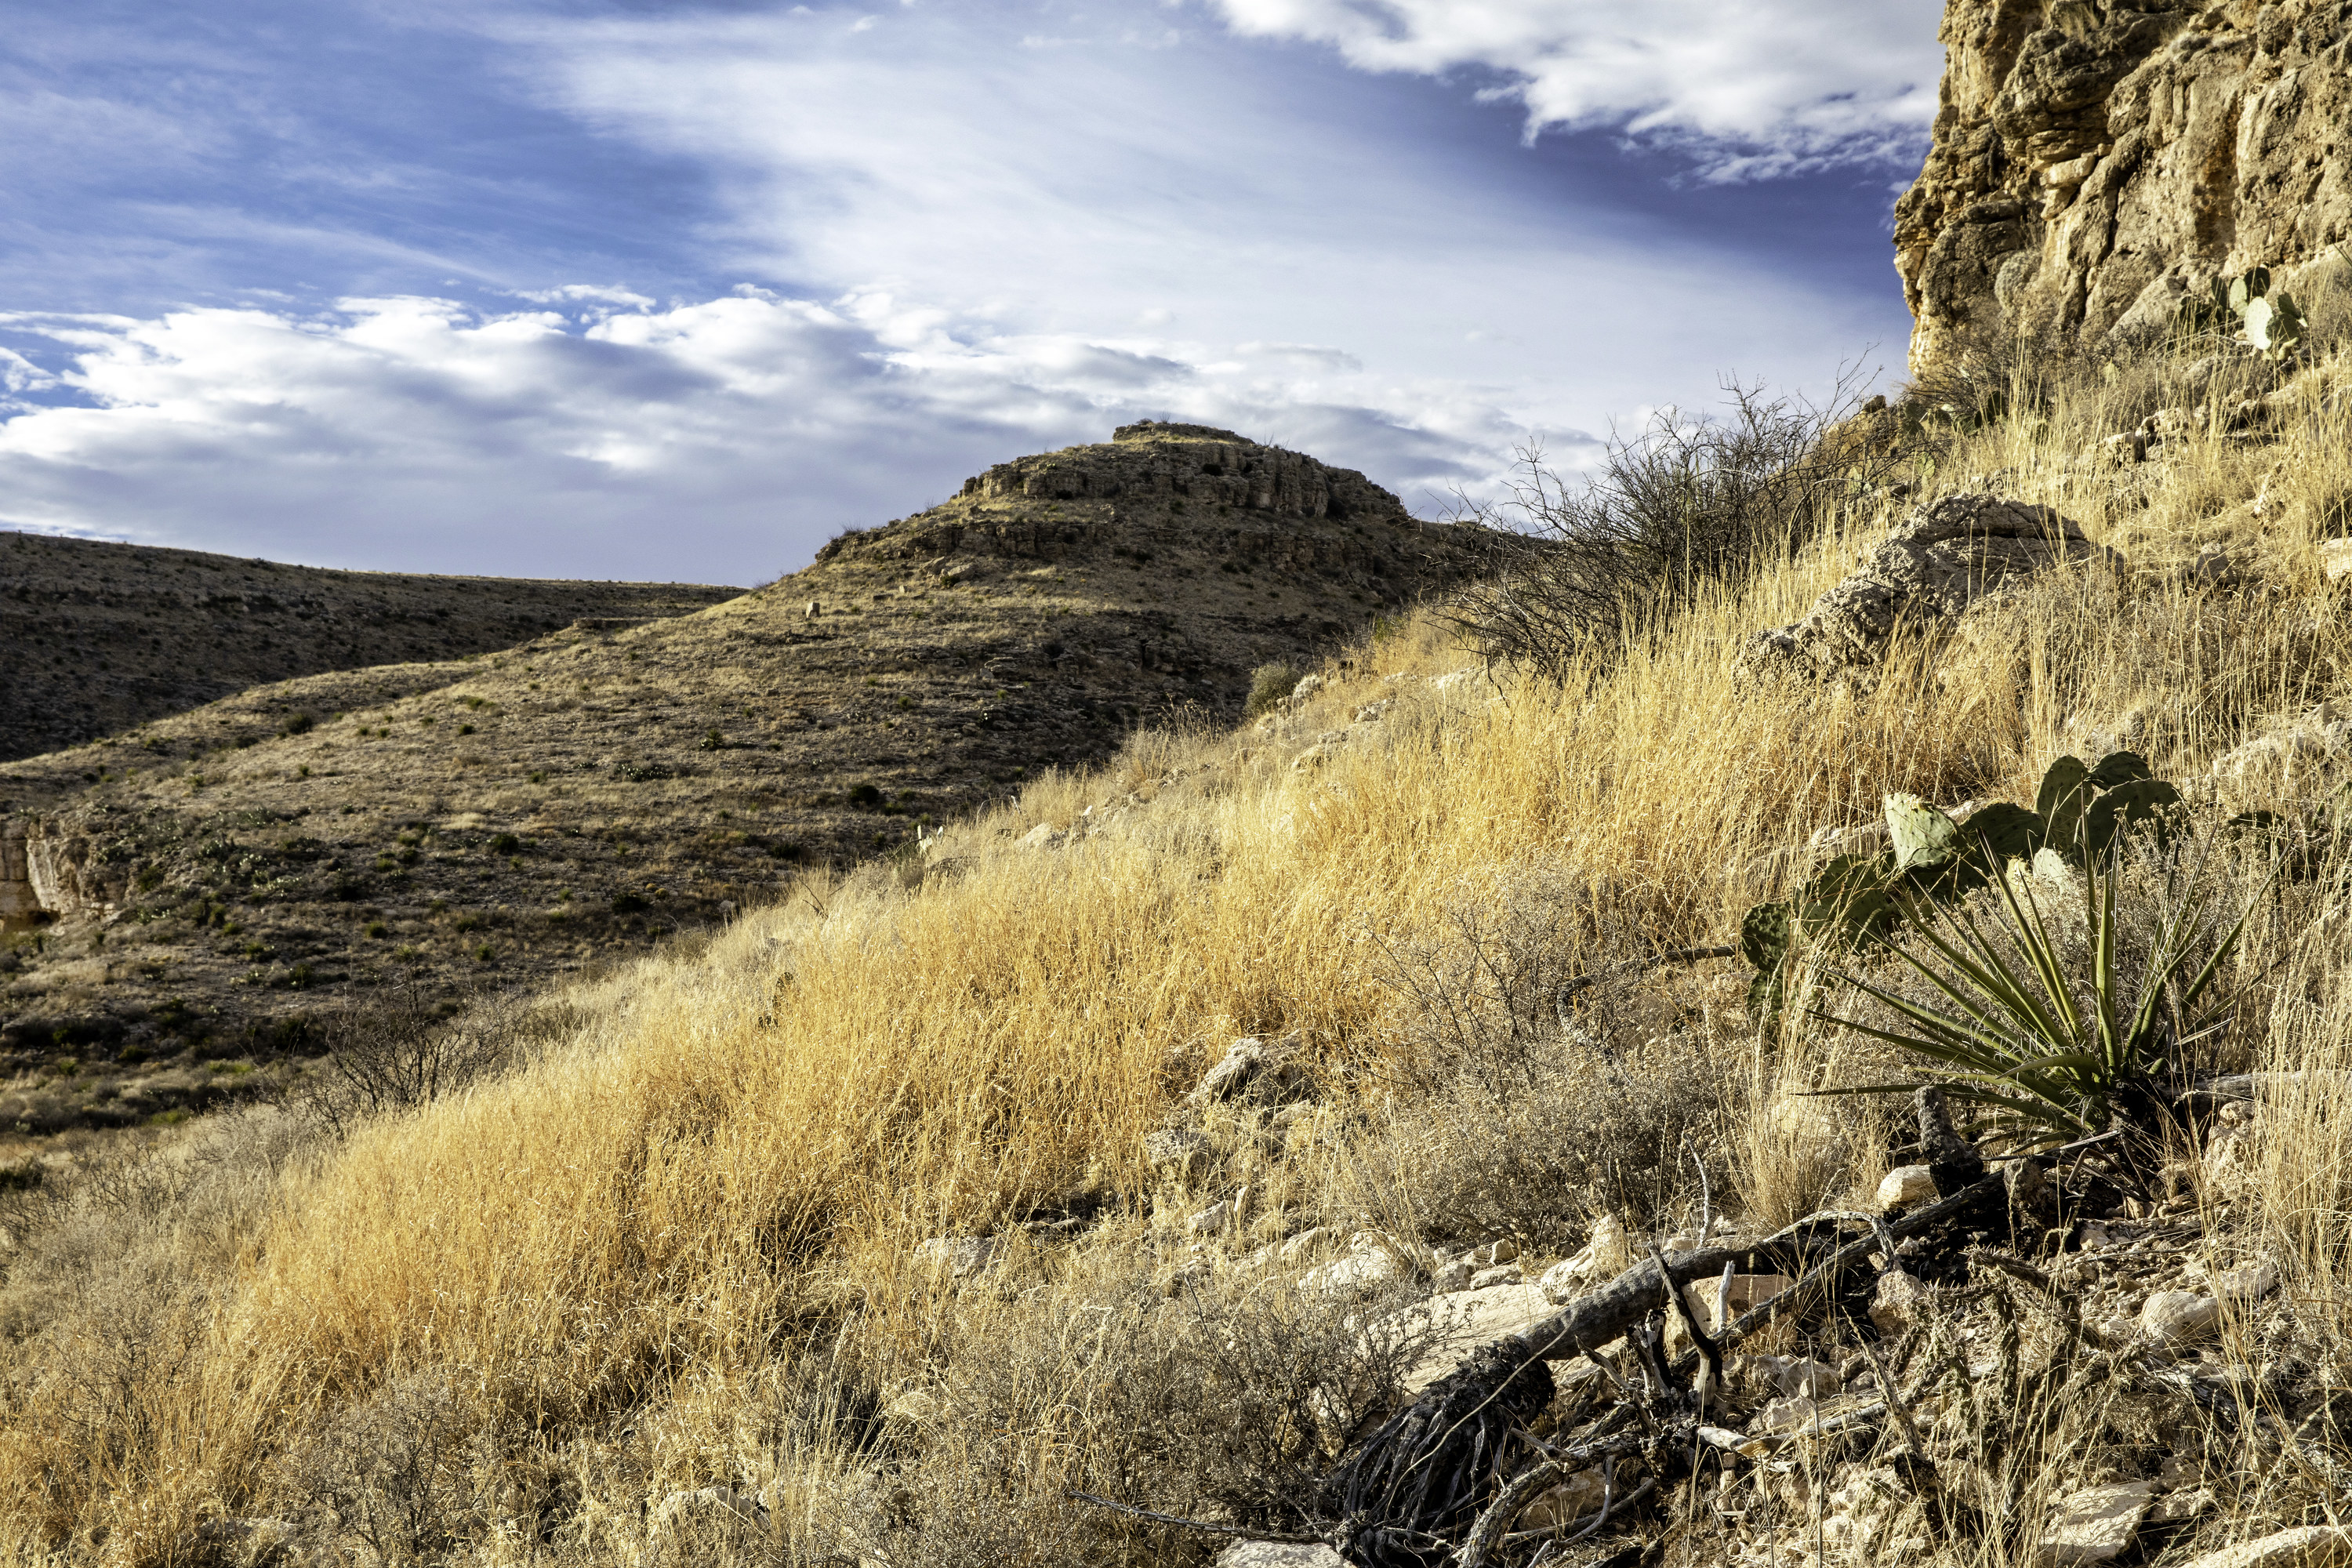 White clouds hang over the rough peak of Carlsbad Caverns' mountains. Dried brush accentuates the frontmost space.